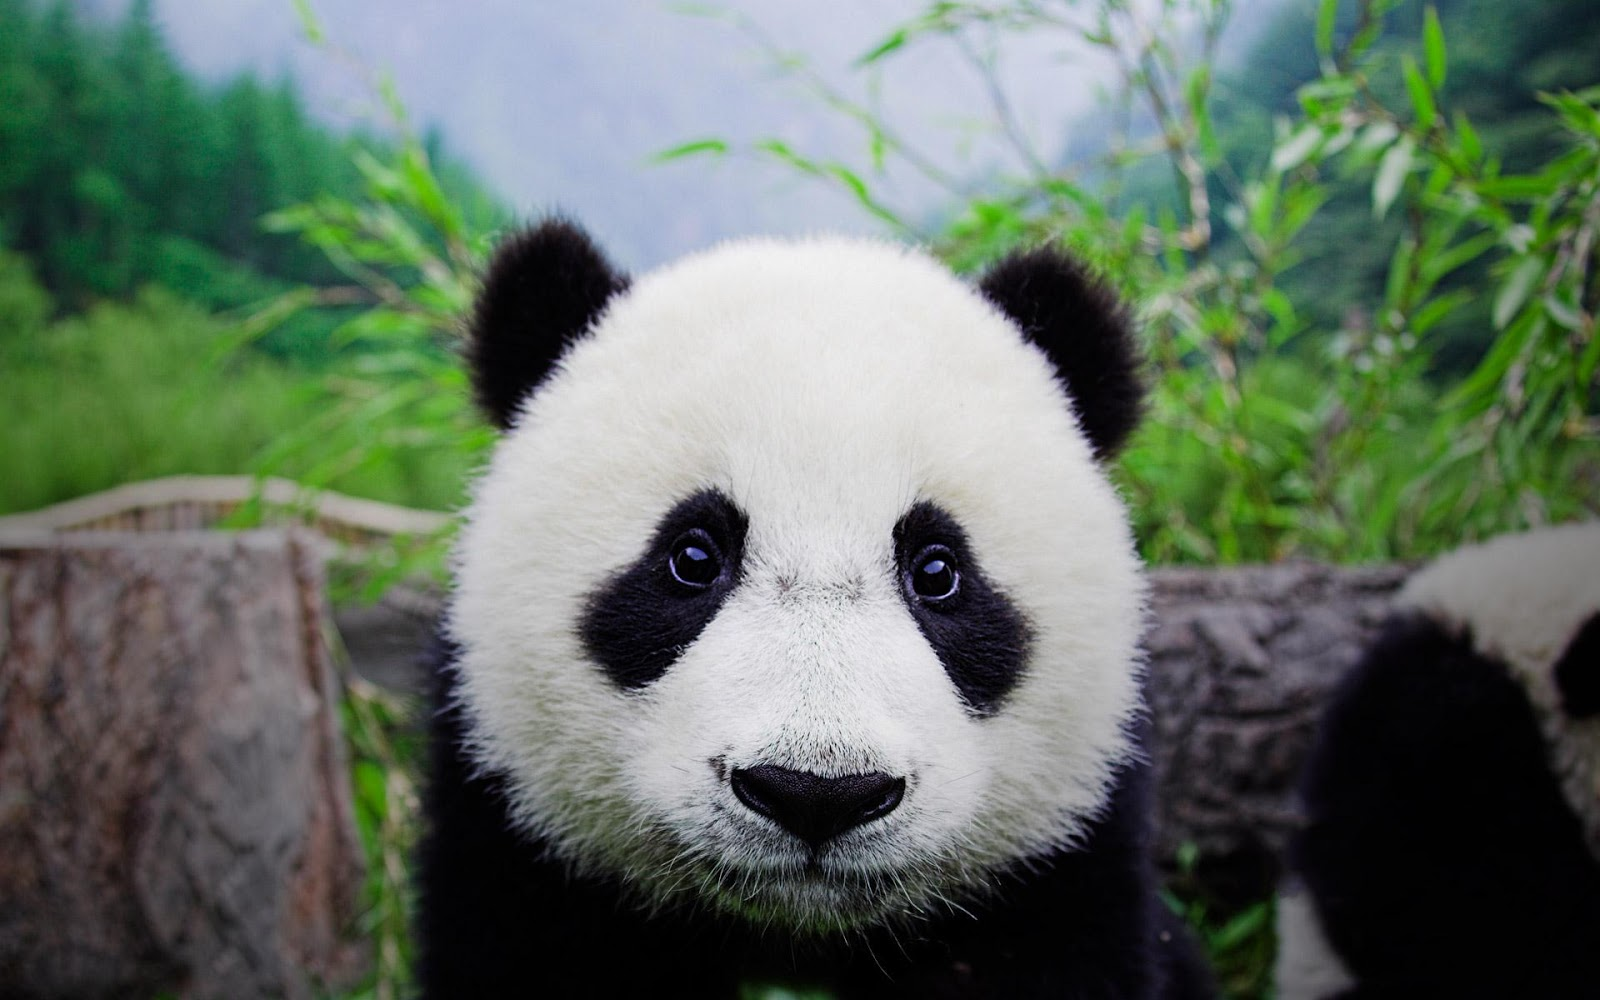 Central Wallpaper: Cute Panda Bears HD Wallpapers